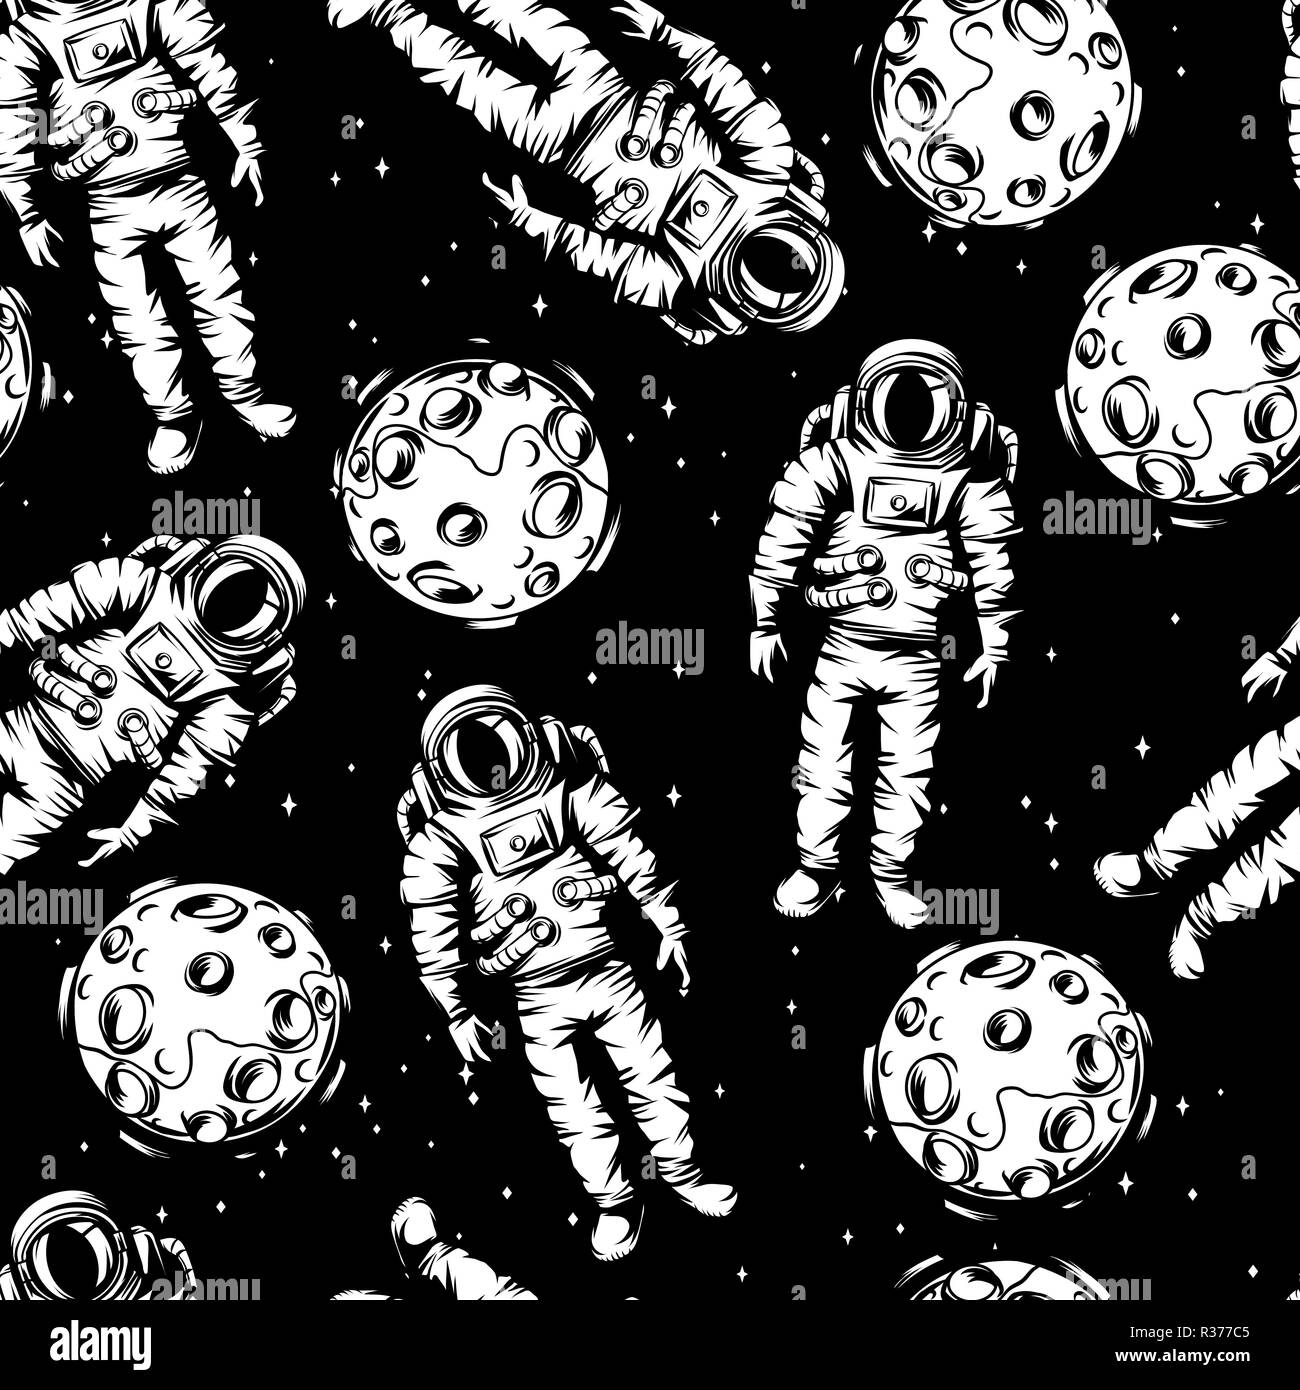 Seamless pattern of astronauts and moons. - Stock Image